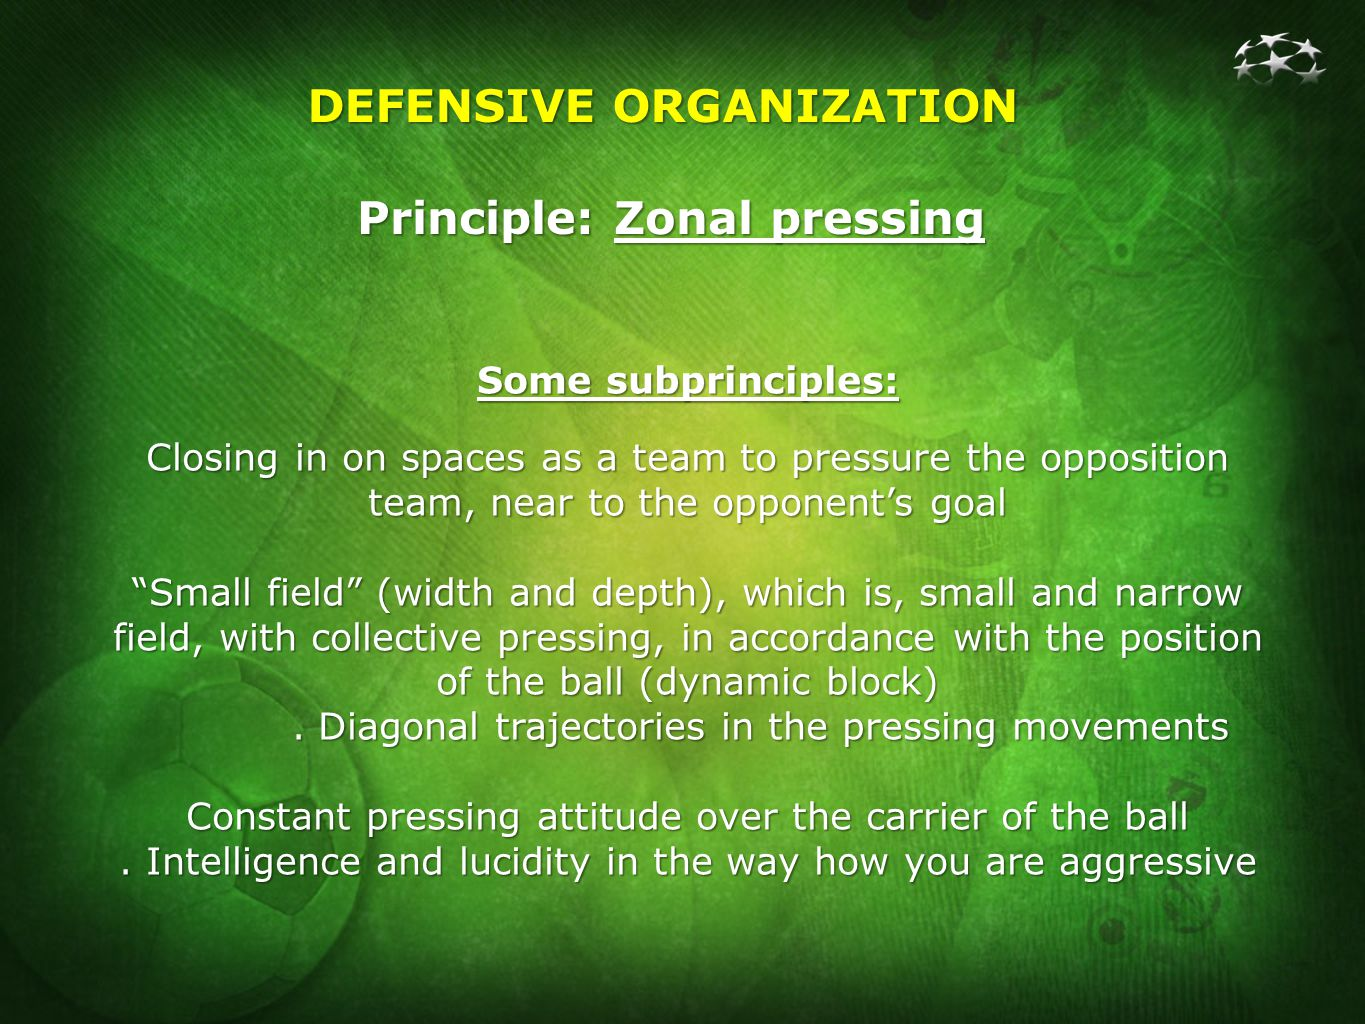 DEFENSIVE ORGANIZATION Principle: Zonal pressing Some subprinciples: Closing in on spaces as a team to pressure the opposition team, near to the opponents goal Small field (width and depth), which is, small and narrow field, with collective pressing, in accordance with the position of the ball (dynamic block).